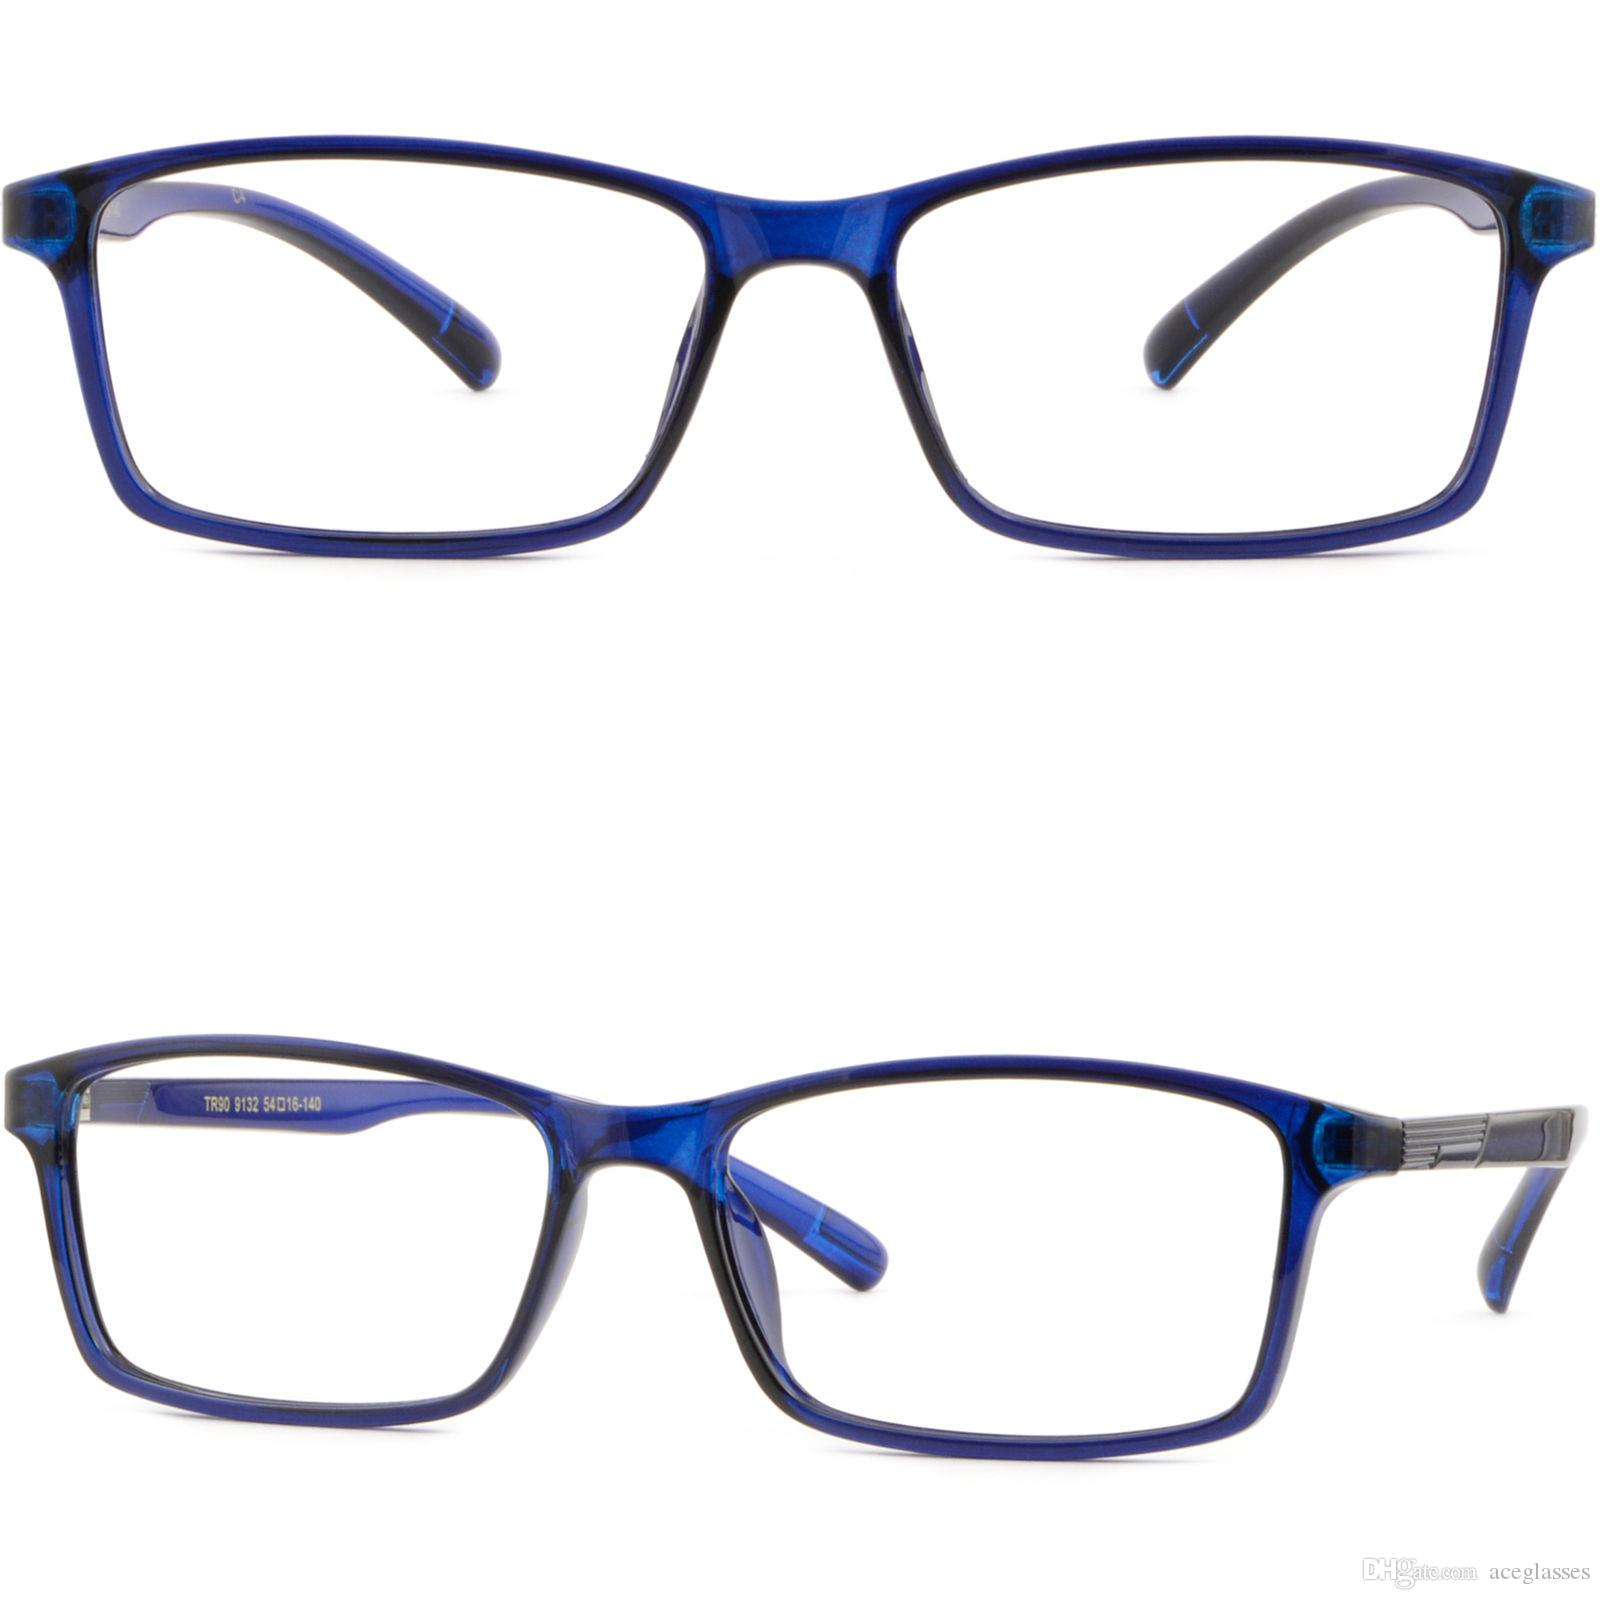 bcdc6b3189 Large Thin Light Plastic Frames Wide TR90 Memory Prescription Glasses Navy  Blue Glasses Frame Online with  23.9 Piece on Aceglasses s Store